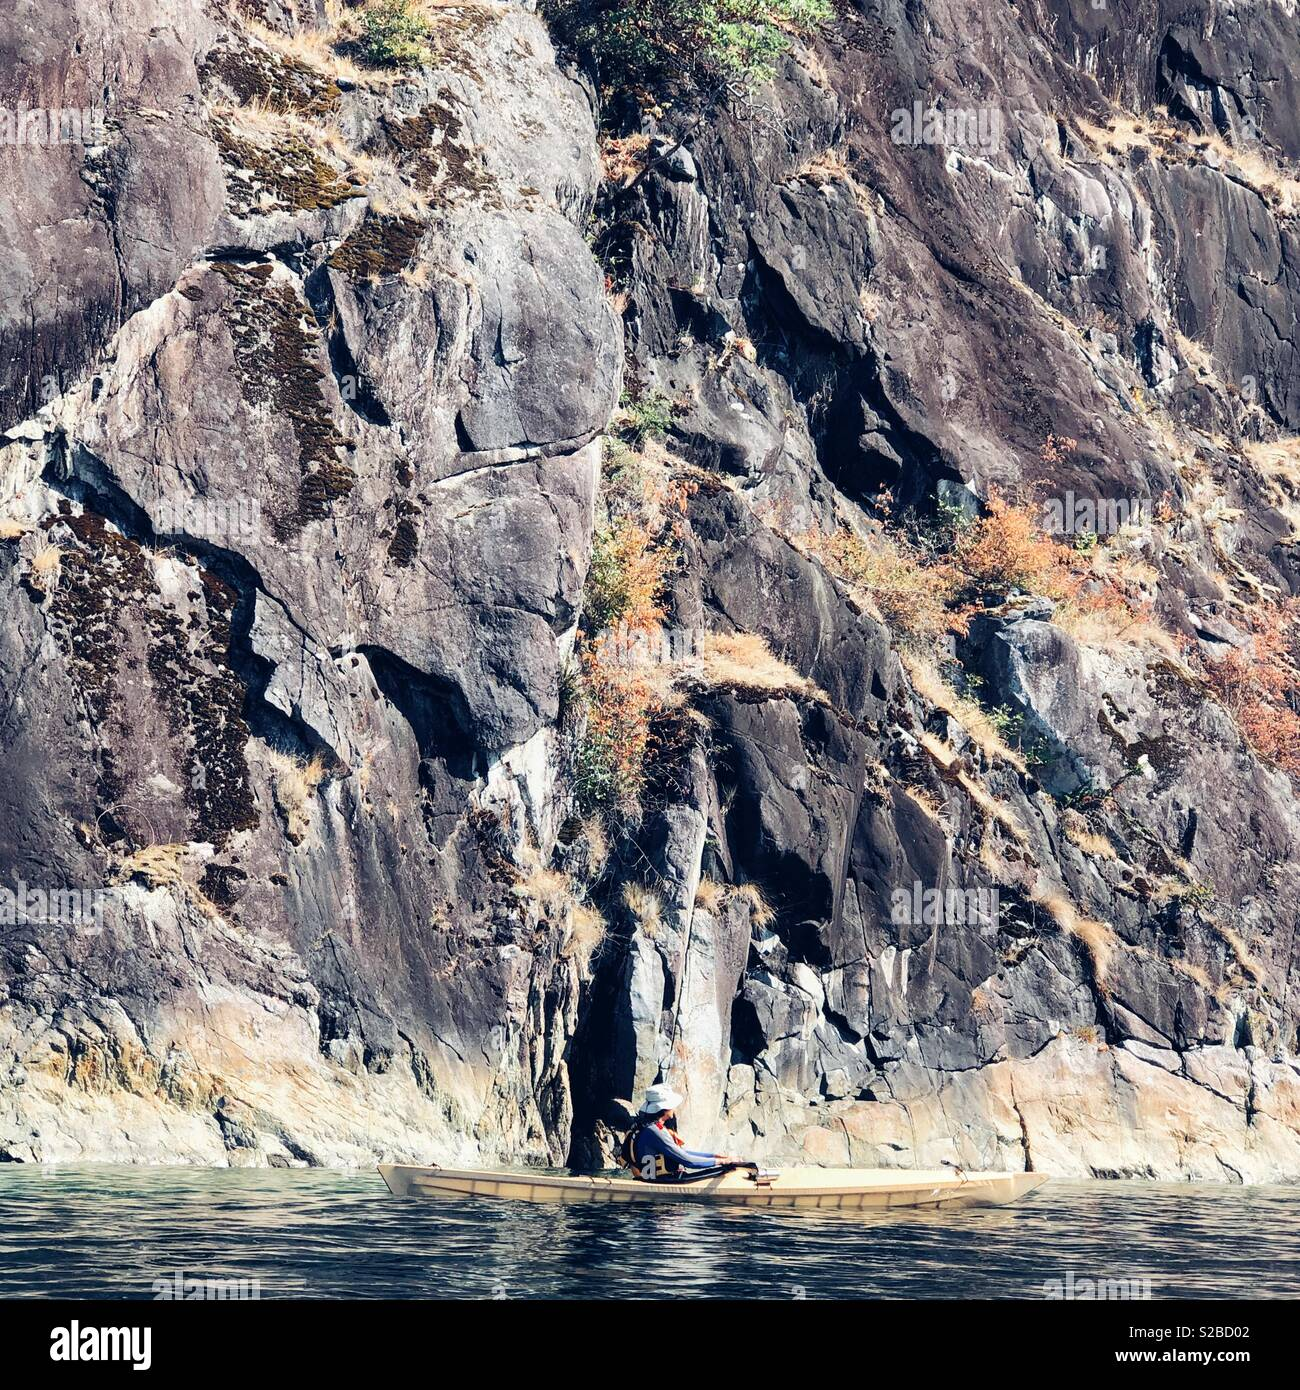 Kayaker near the cliff at Desolation sound, BC, Canada - Stock Image